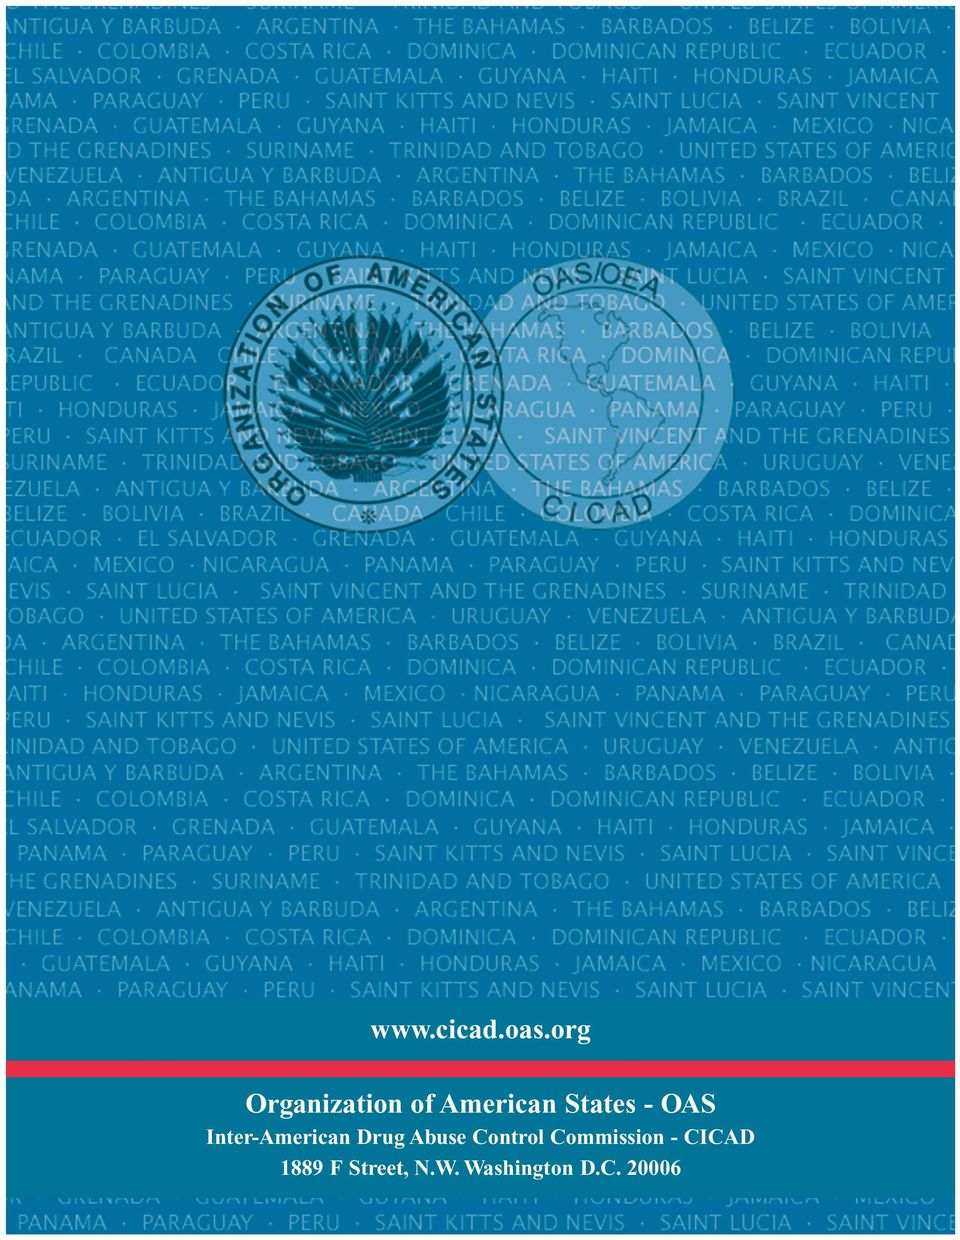 org Multilateral Evaluation Mechanism Organization of American States - OAS Organization of